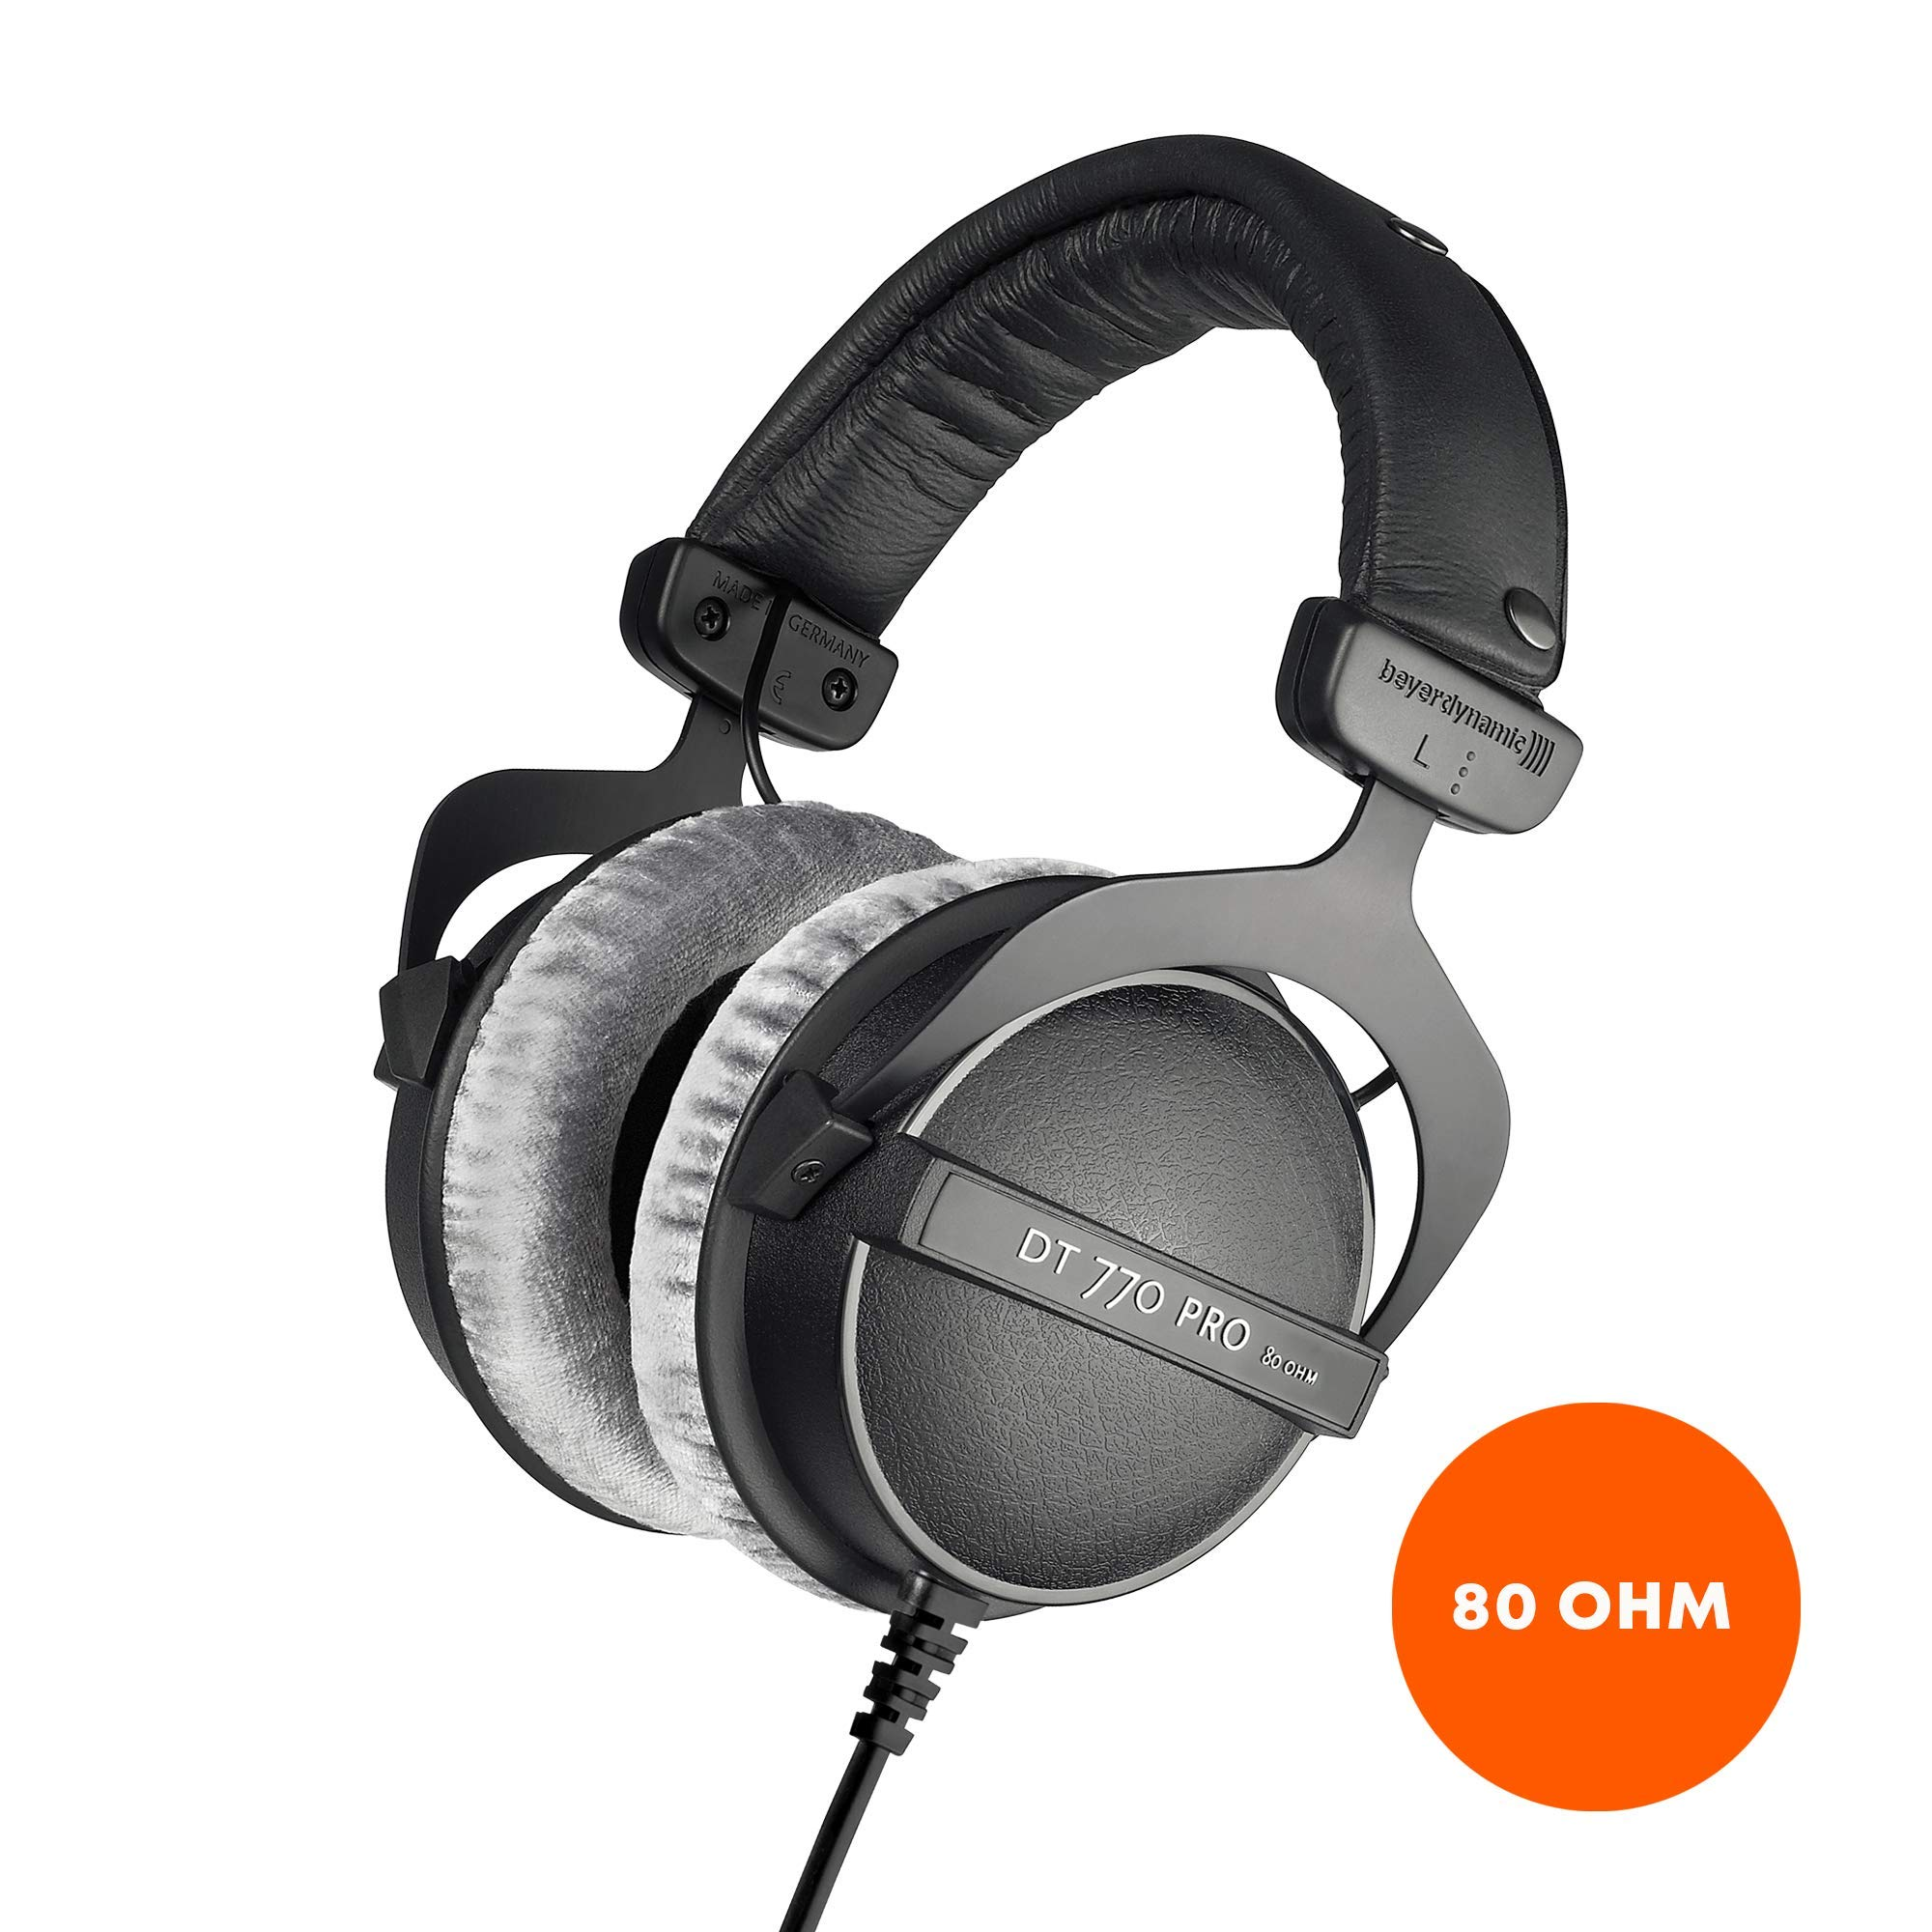 beyerdynamic DT 770 PRO 80 Ohm Over-Ear Studio Headphones in black. Enclosed design, wired for professional recording and monitoring by beyerdynamic